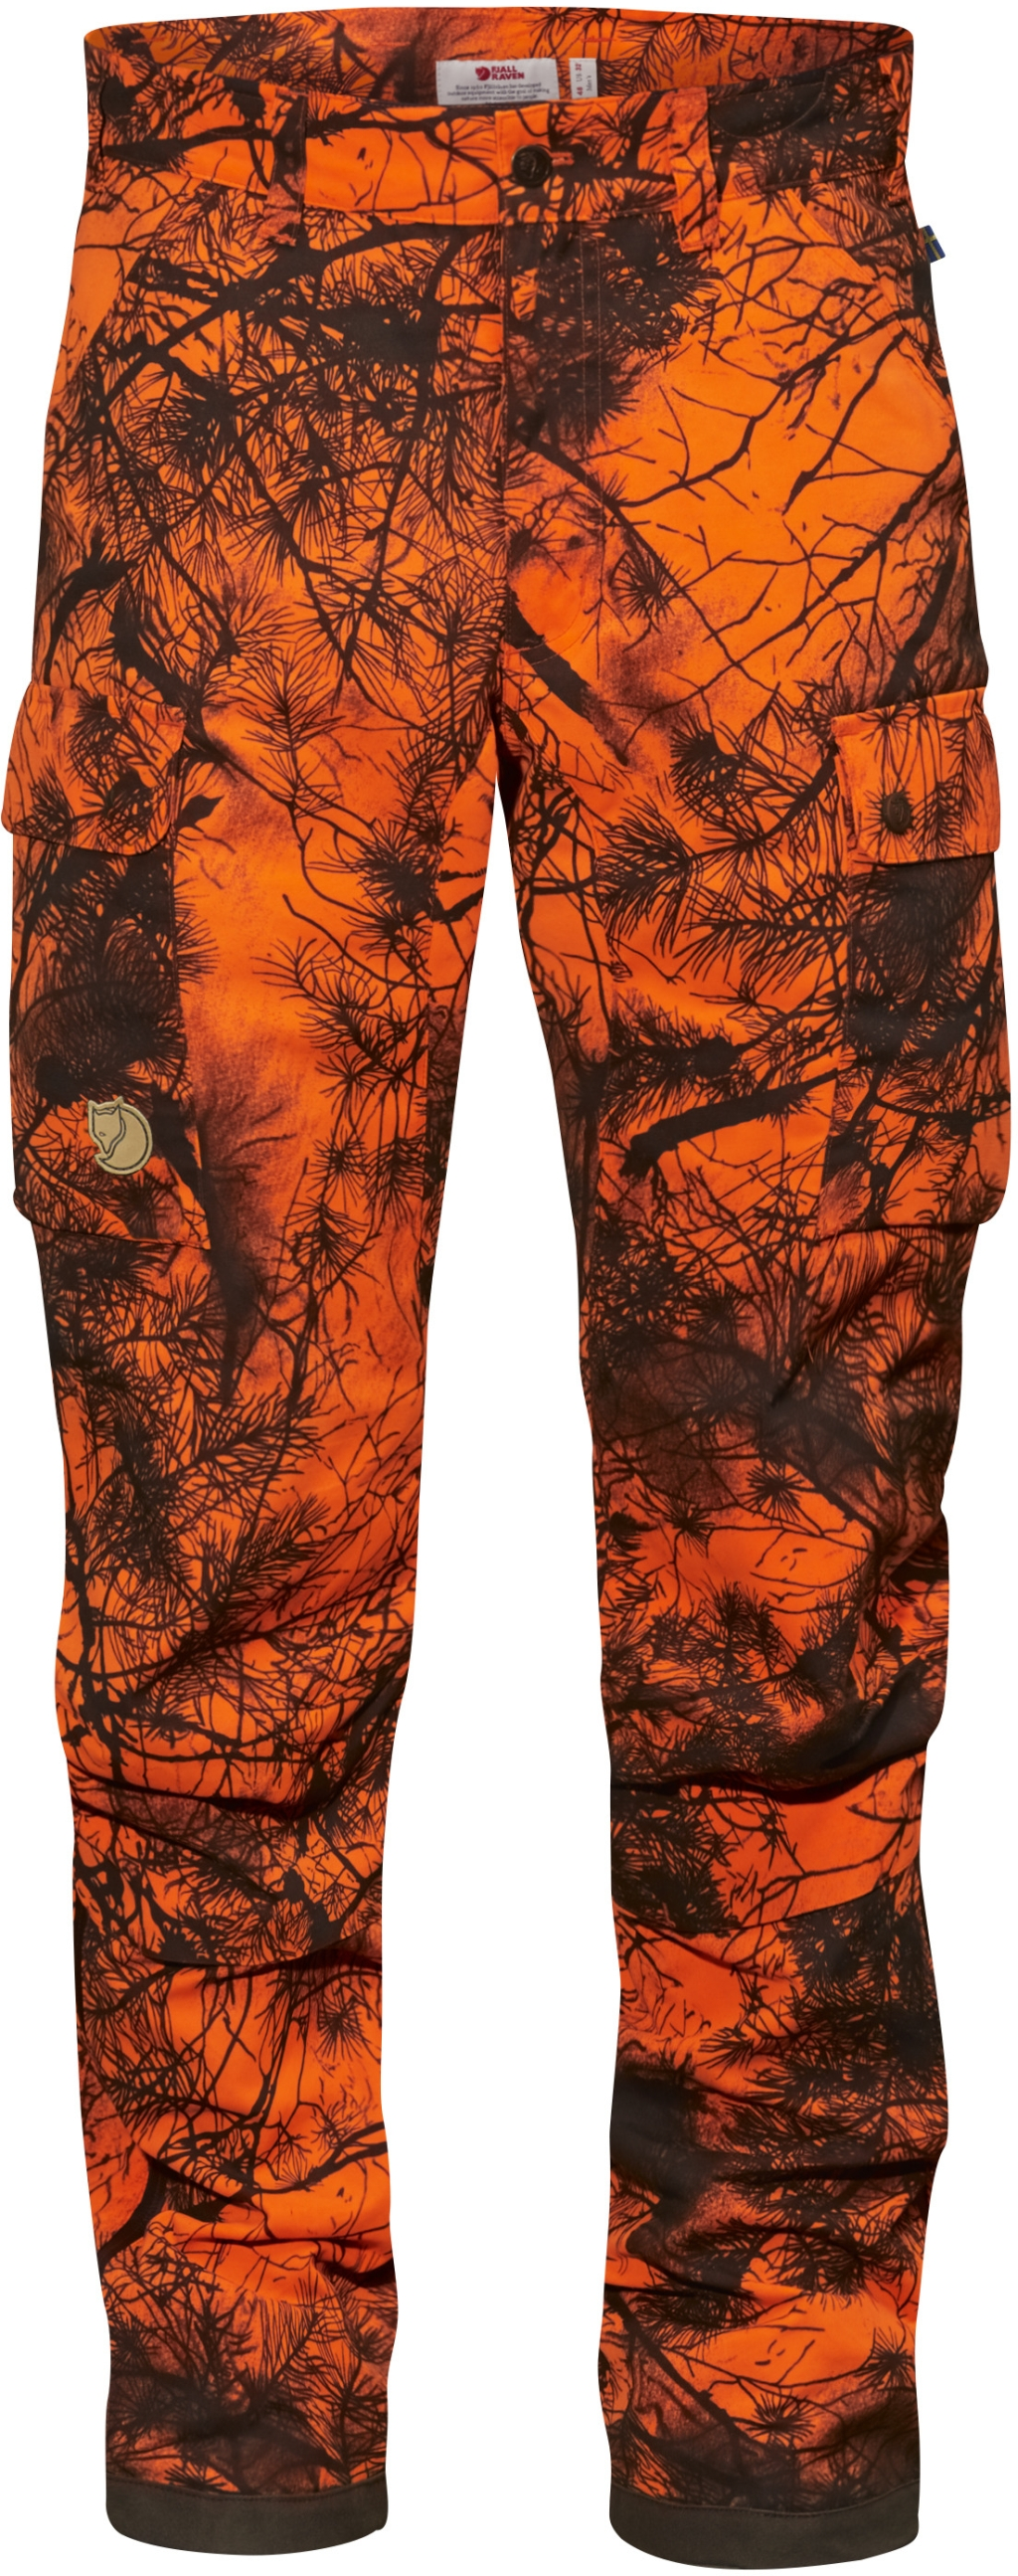 FjallRaven Brenner Pro Winter Trousers Camo Orange Camo-30